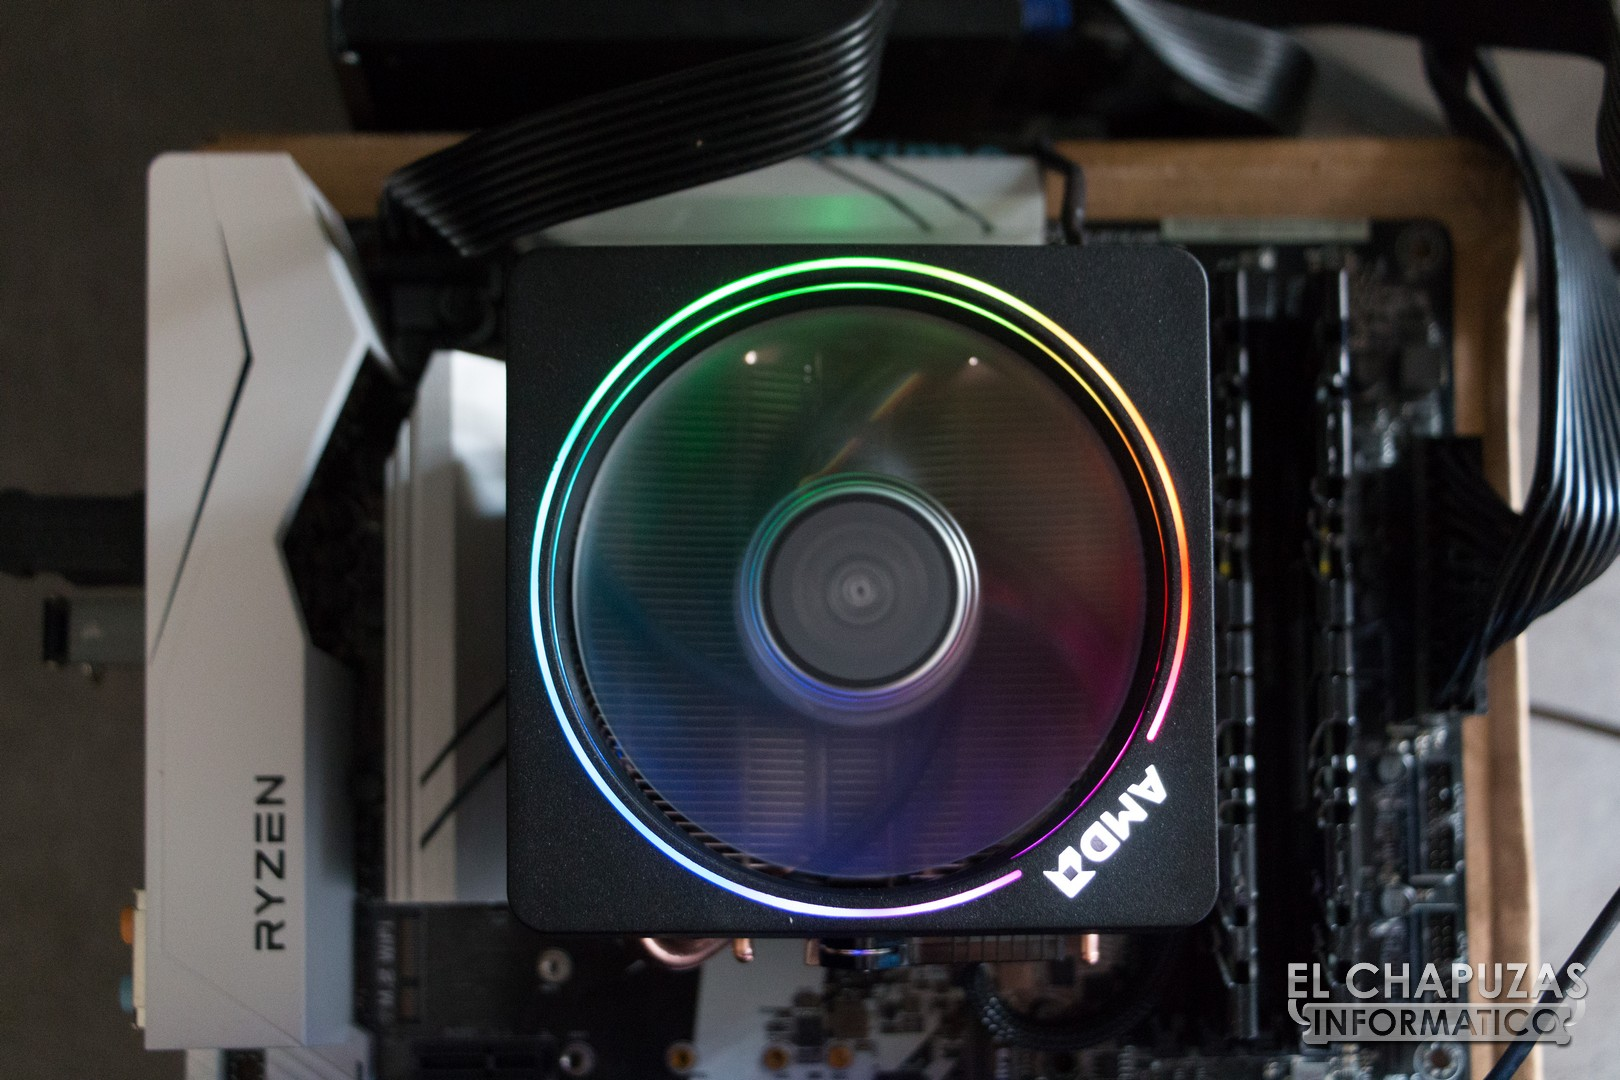 AMD Ryzen 7 2700X CPU Benchmarks and Overclock Performance Leak